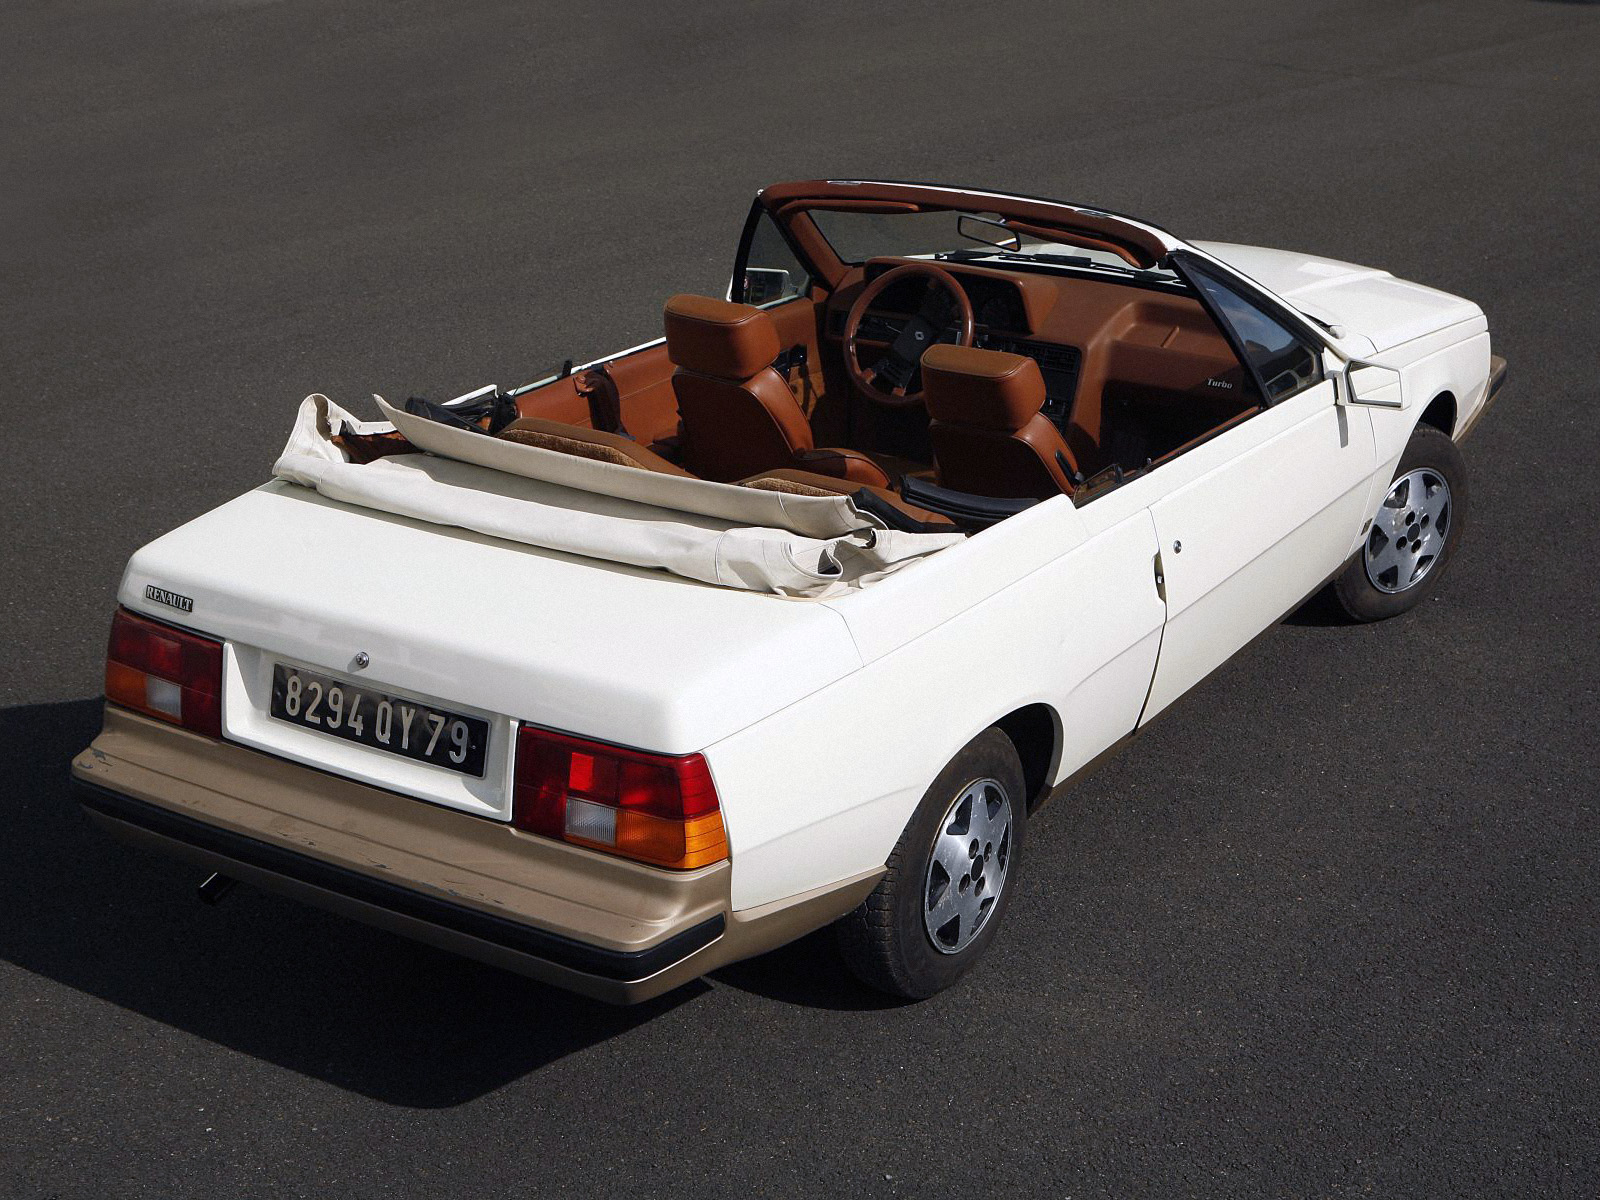 renault fuego turbo convertible 6 ran when parked. Black Bedroom Furniture Sets. Home Design Ideas